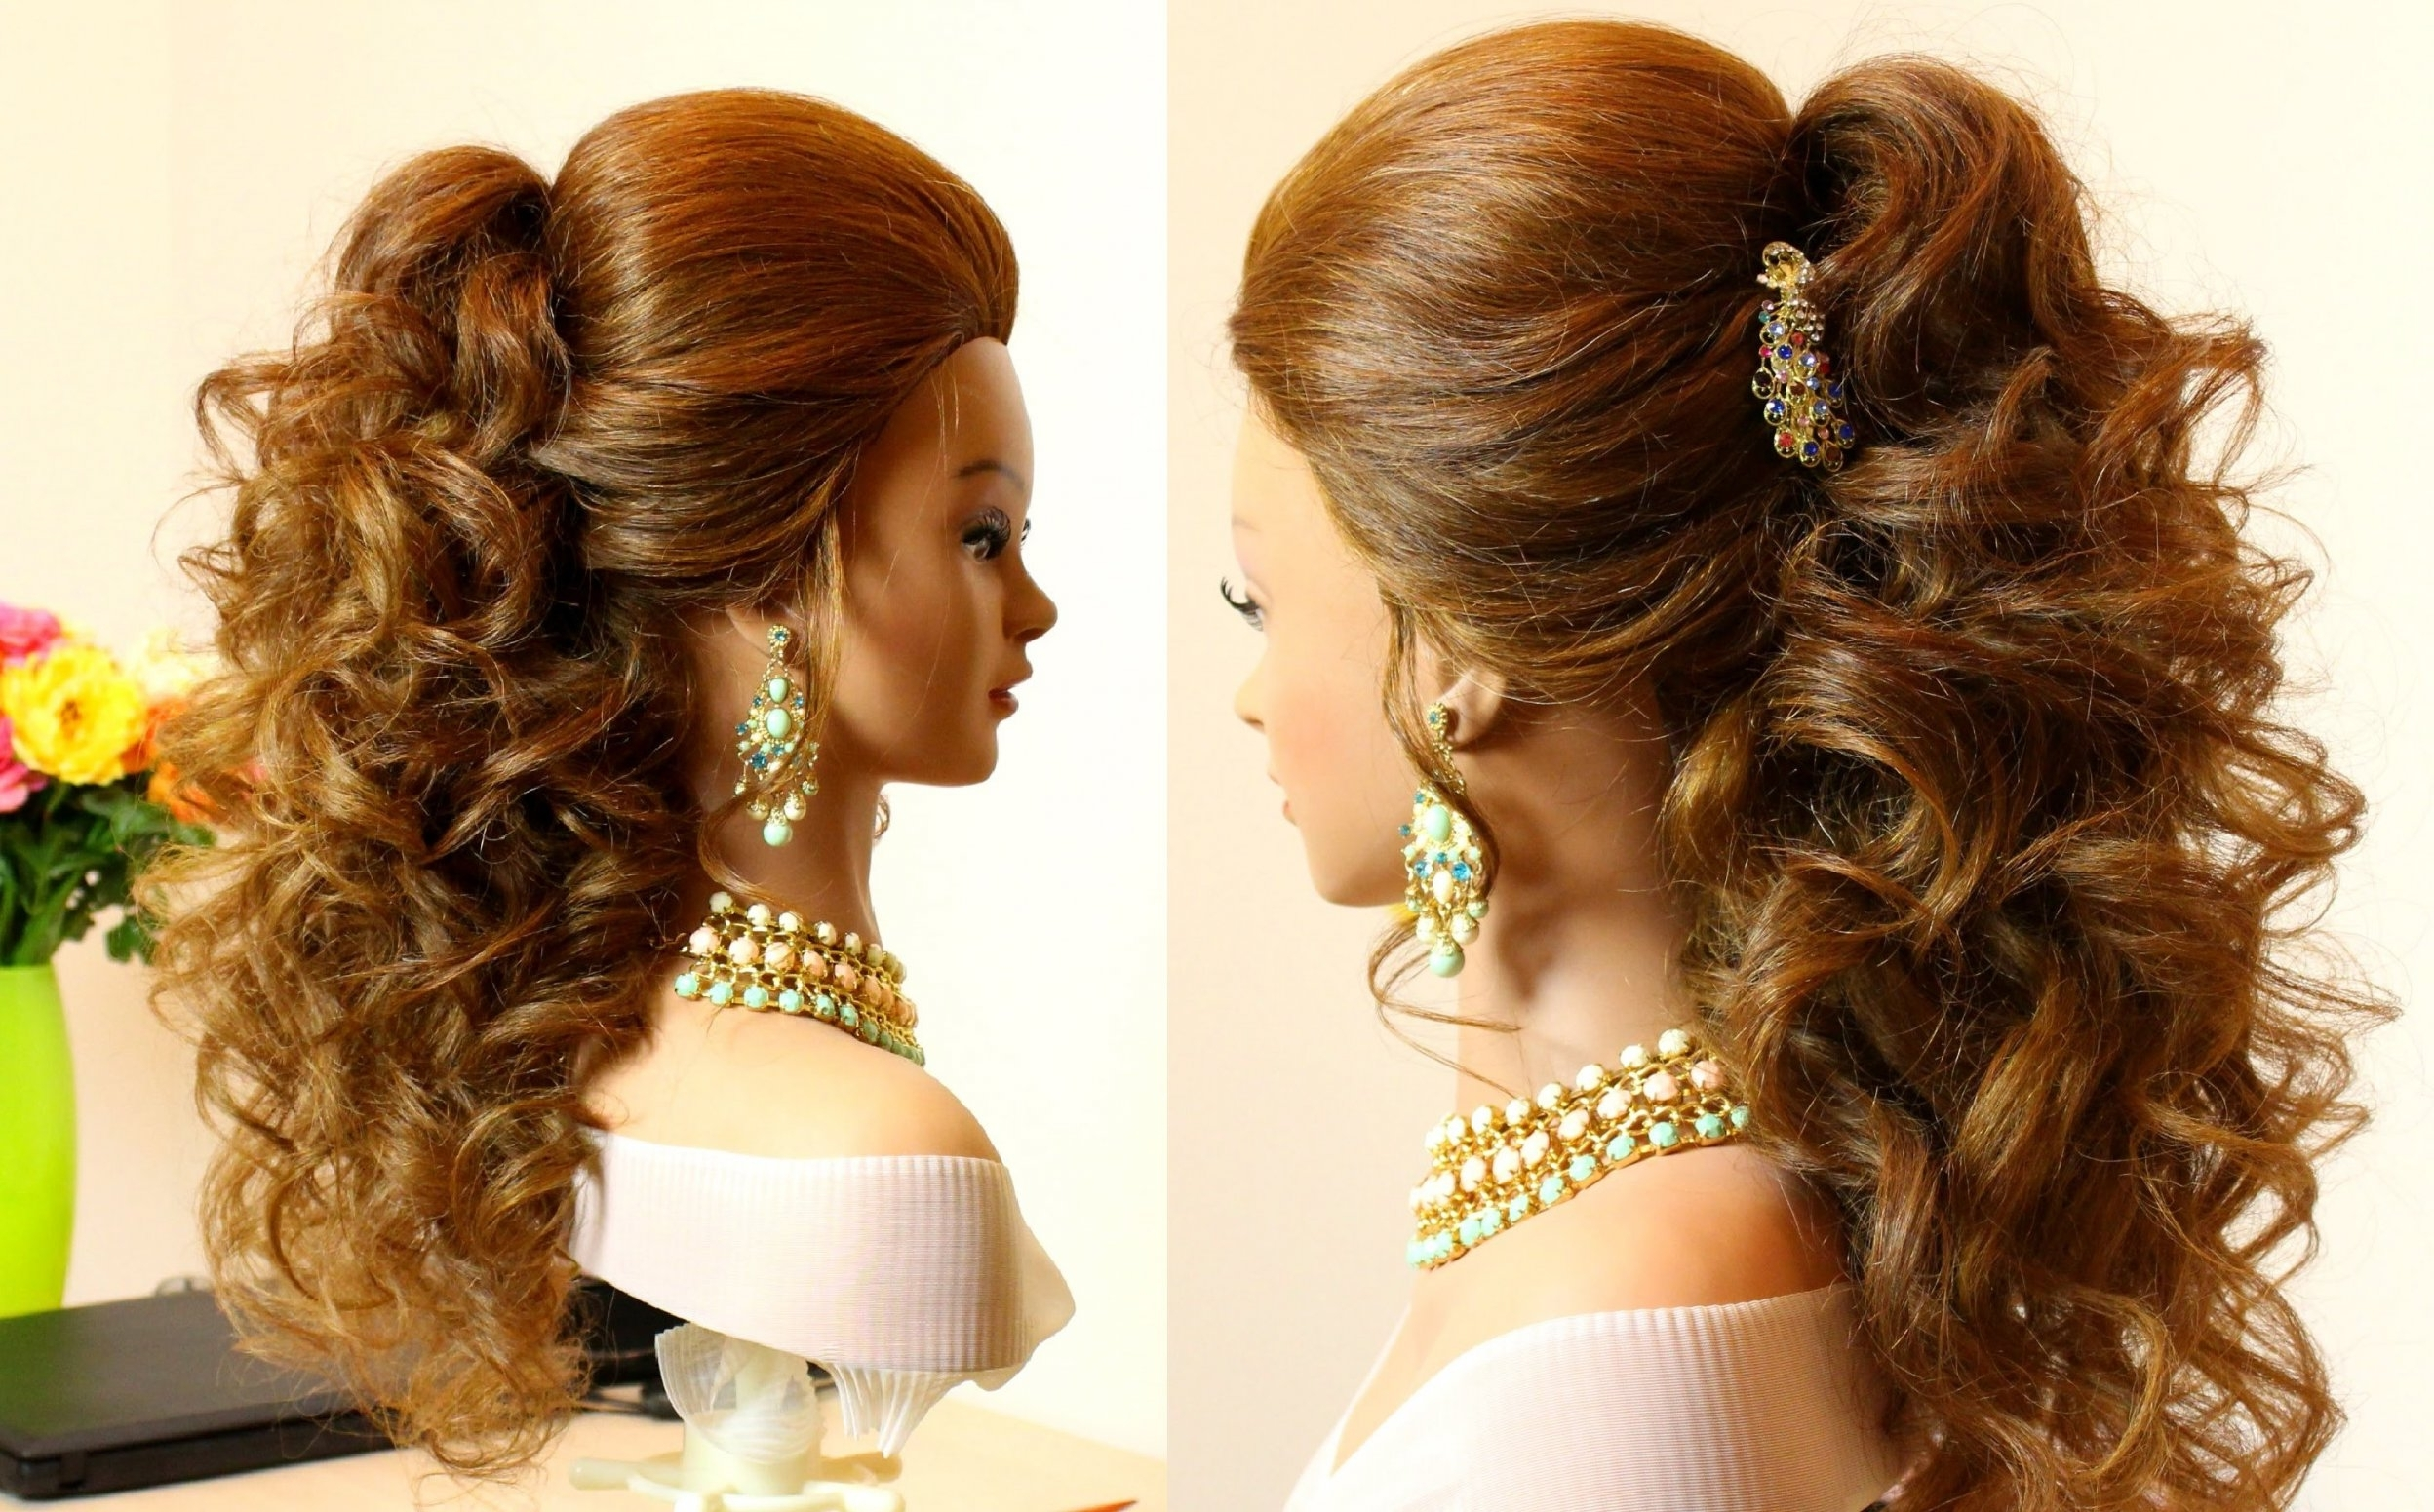 Hair Updos For Long Curly Hair Curly Bridal Hairstyle For Long With Hair Updos For Curly Hair (View 5 of 15)